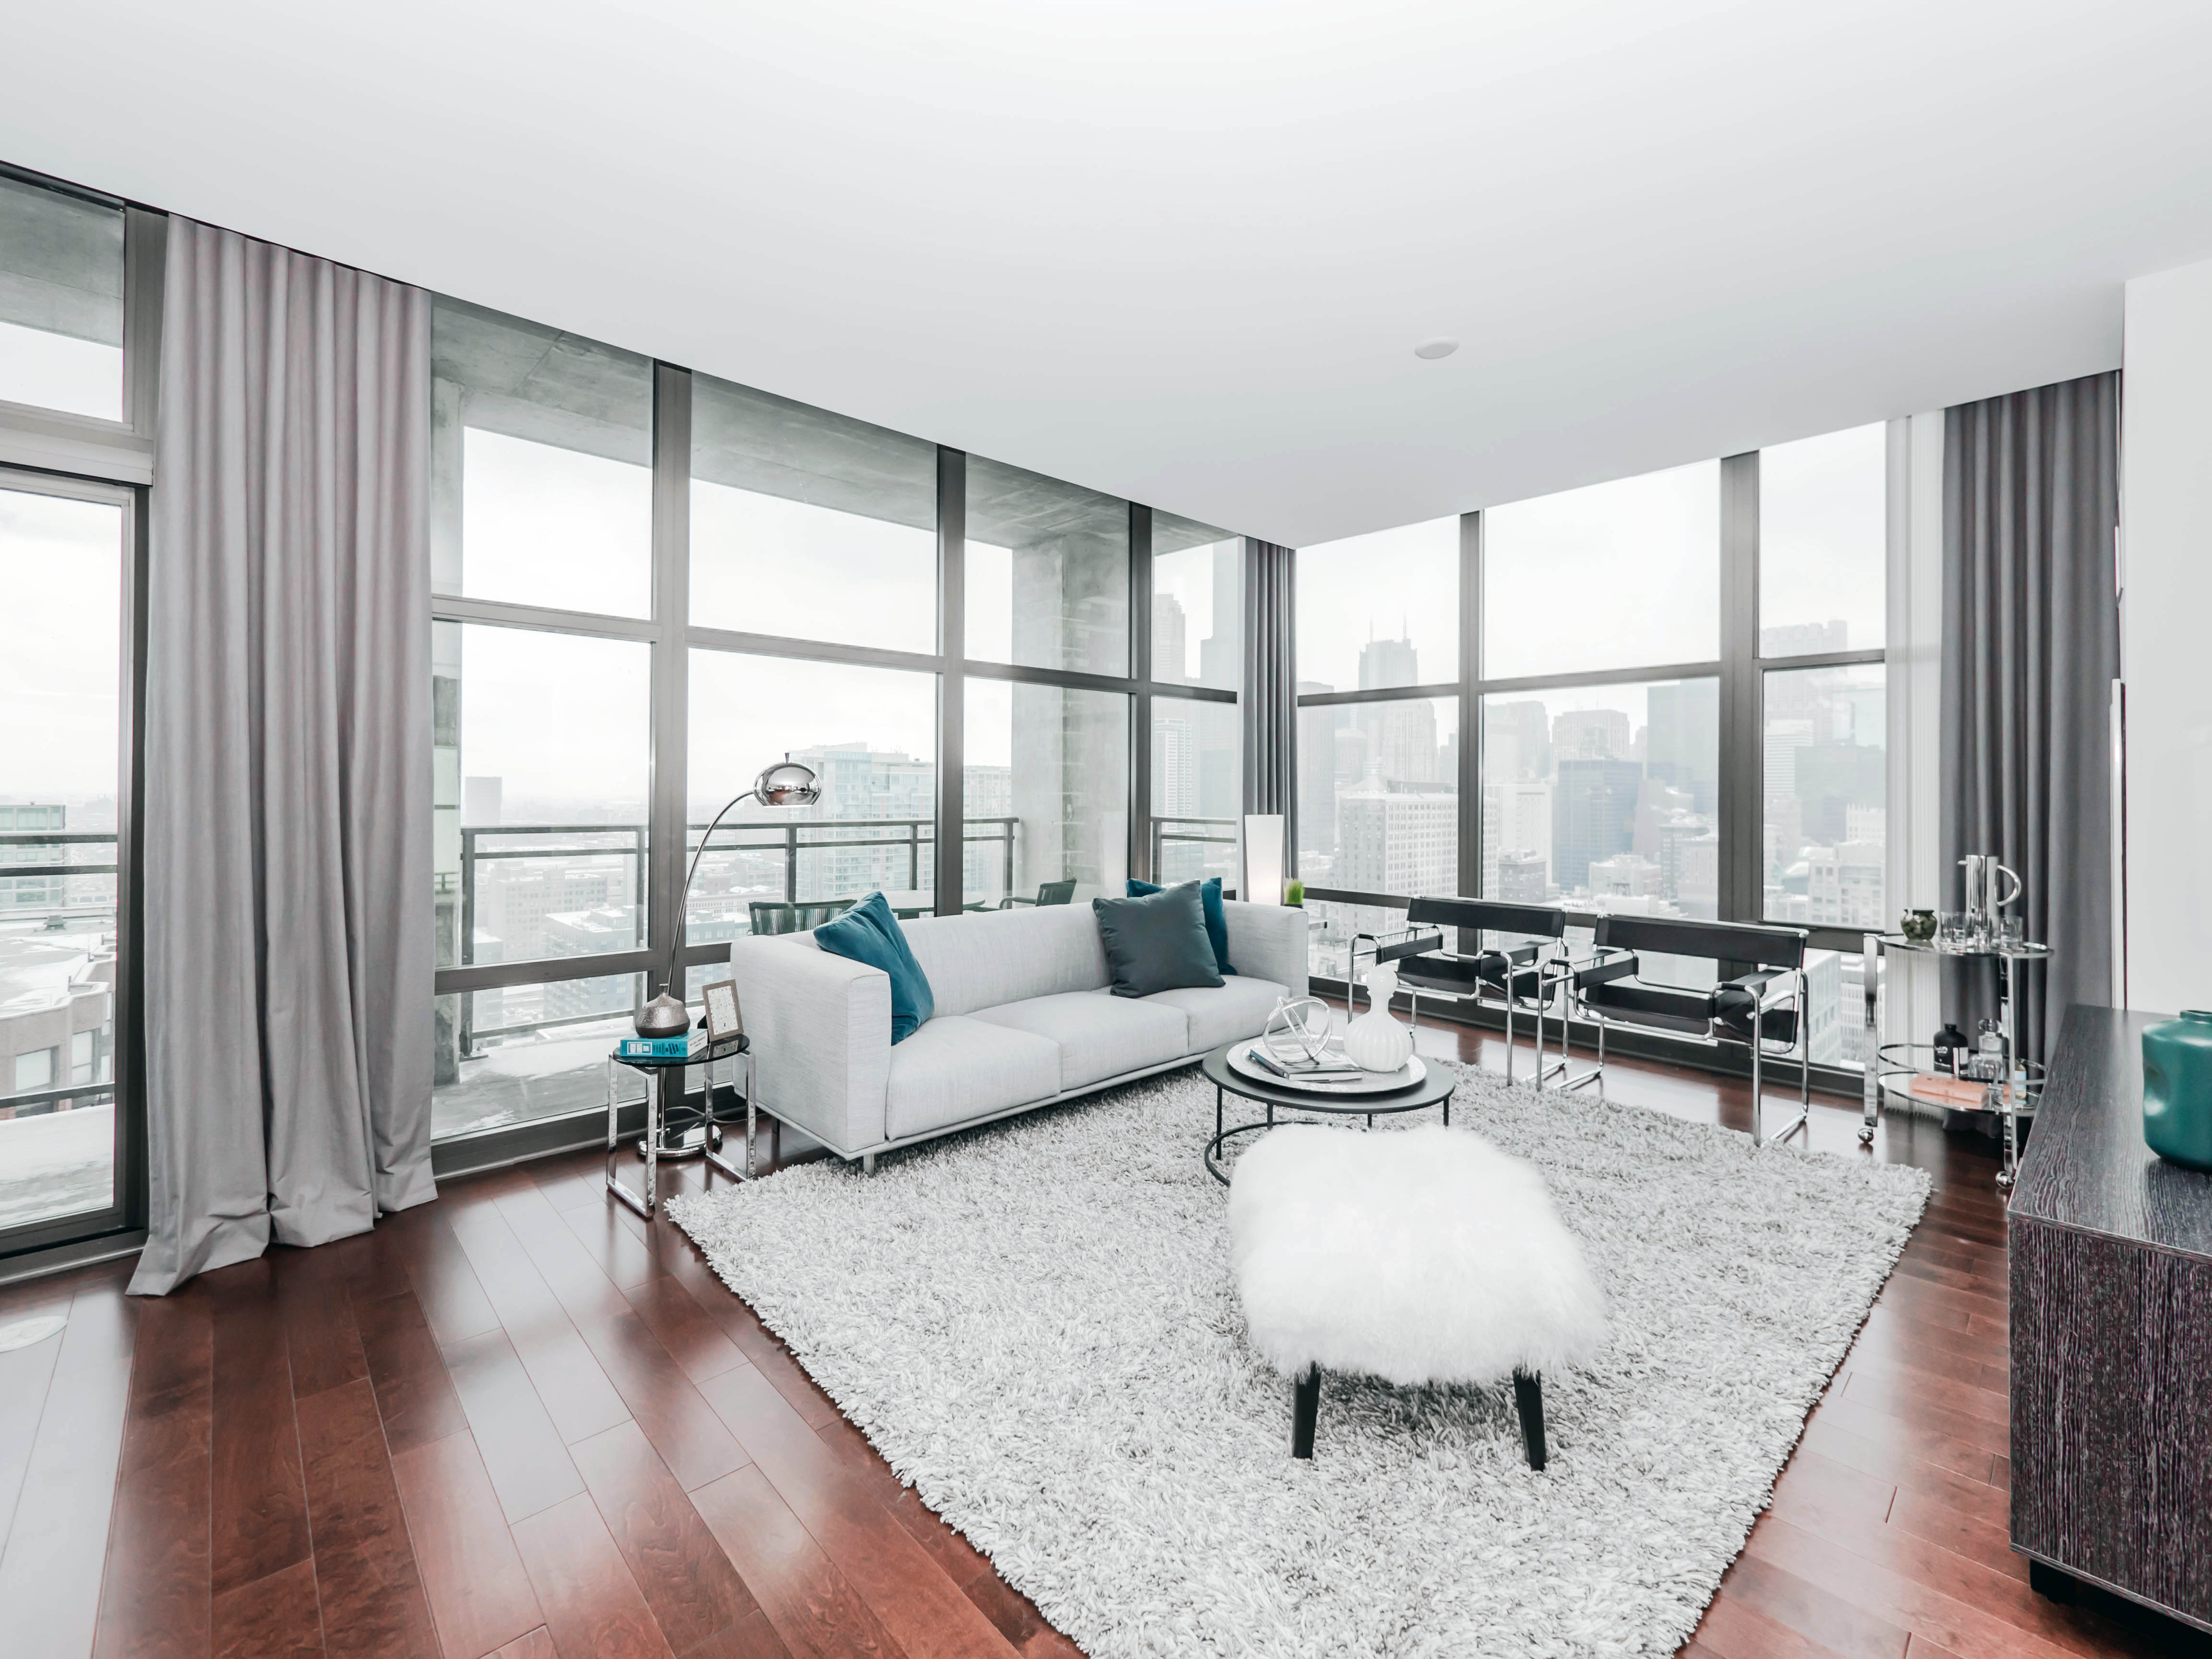 Astoria Tower apartments, 8 E 9th St, South Loop – YoChicago